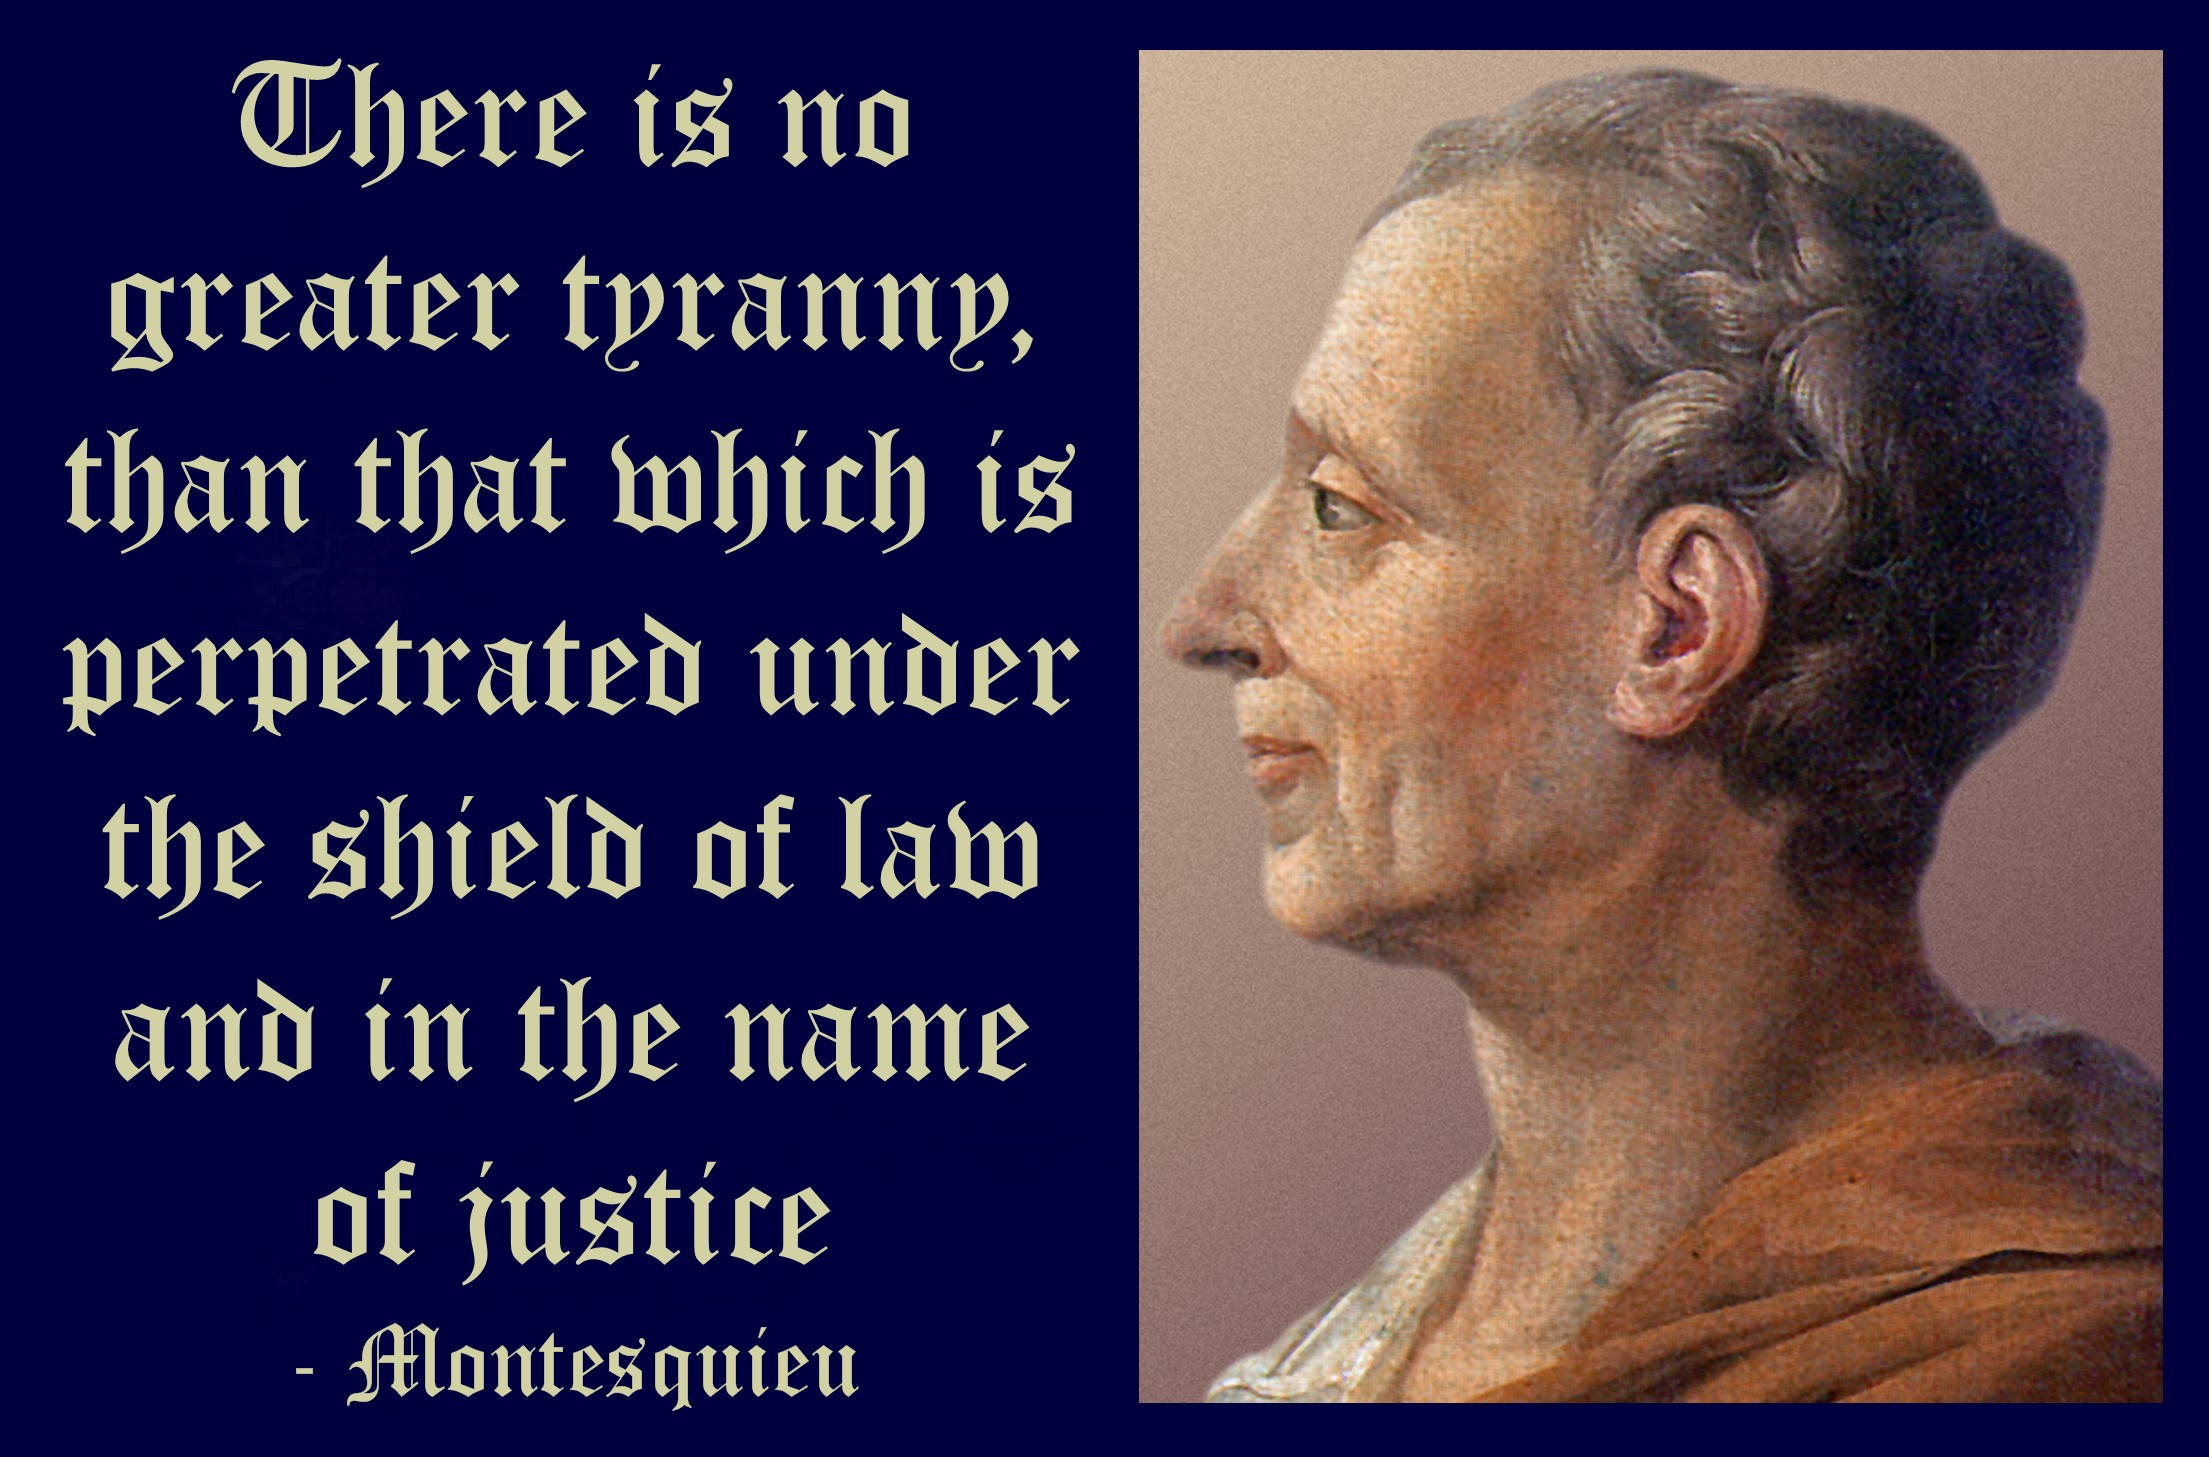 https://a4cgr.files.wordpress.com/2011/03/tyranny_-_montesquieu.jpg